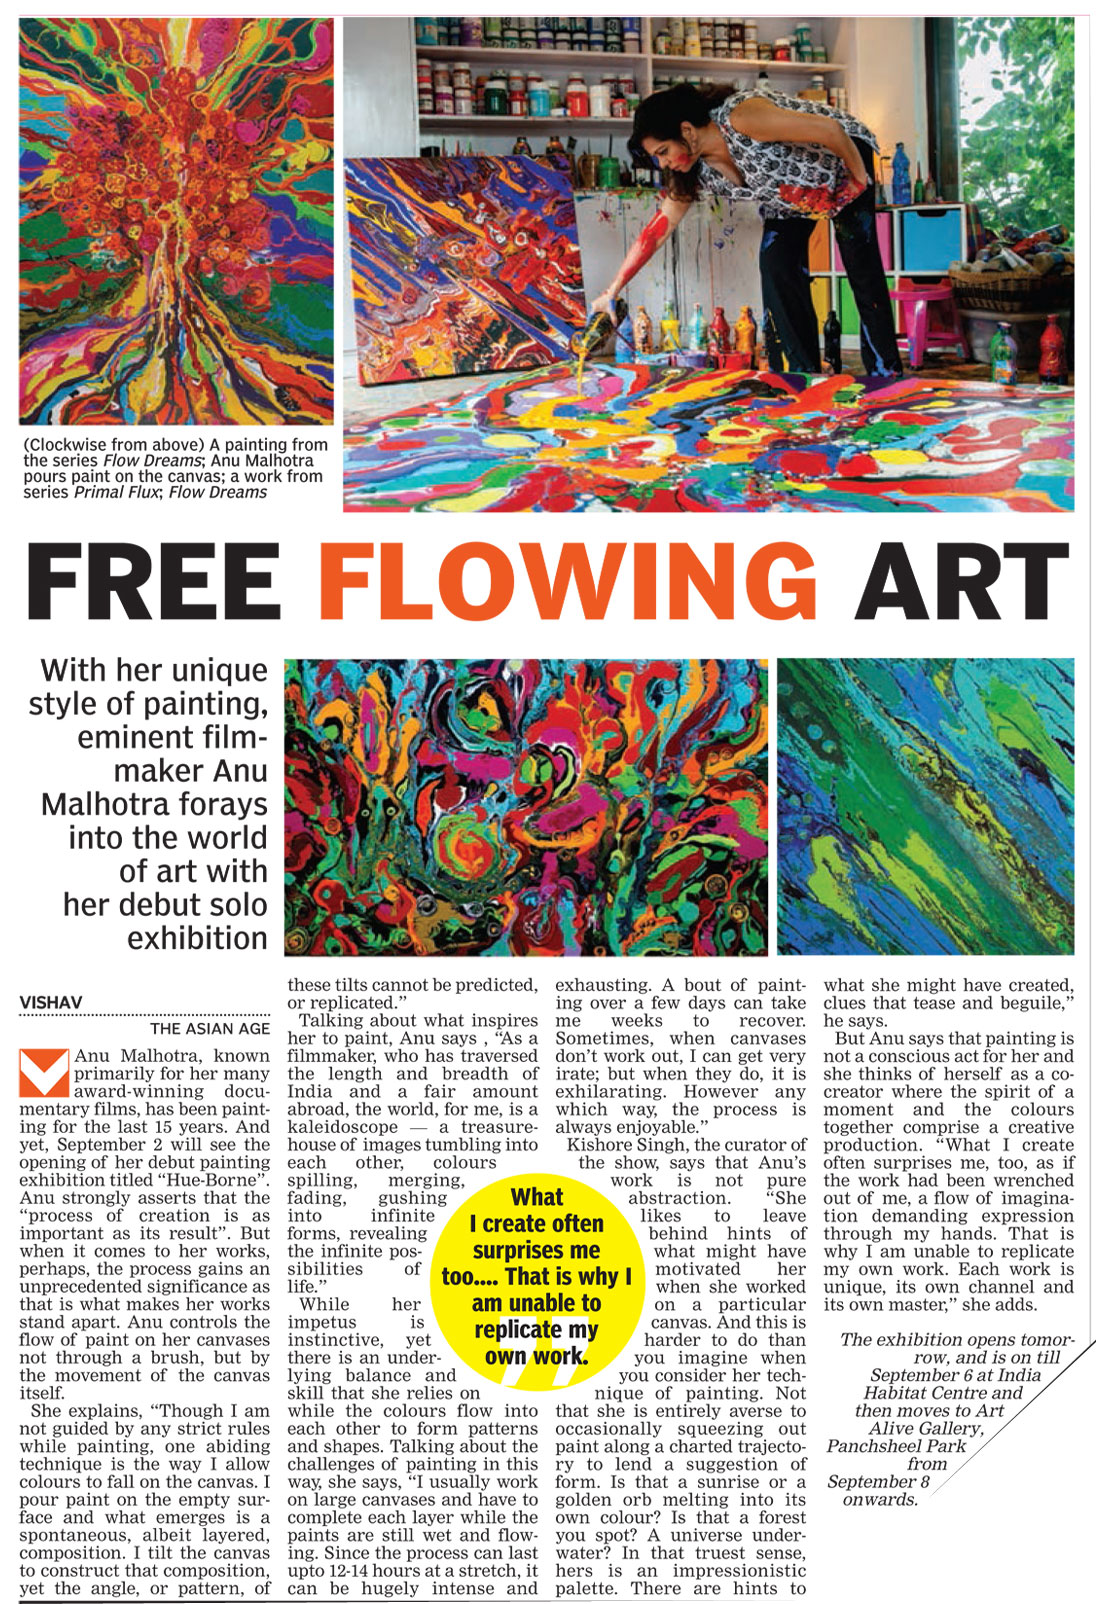 The Asian Age Sep 01, 2014